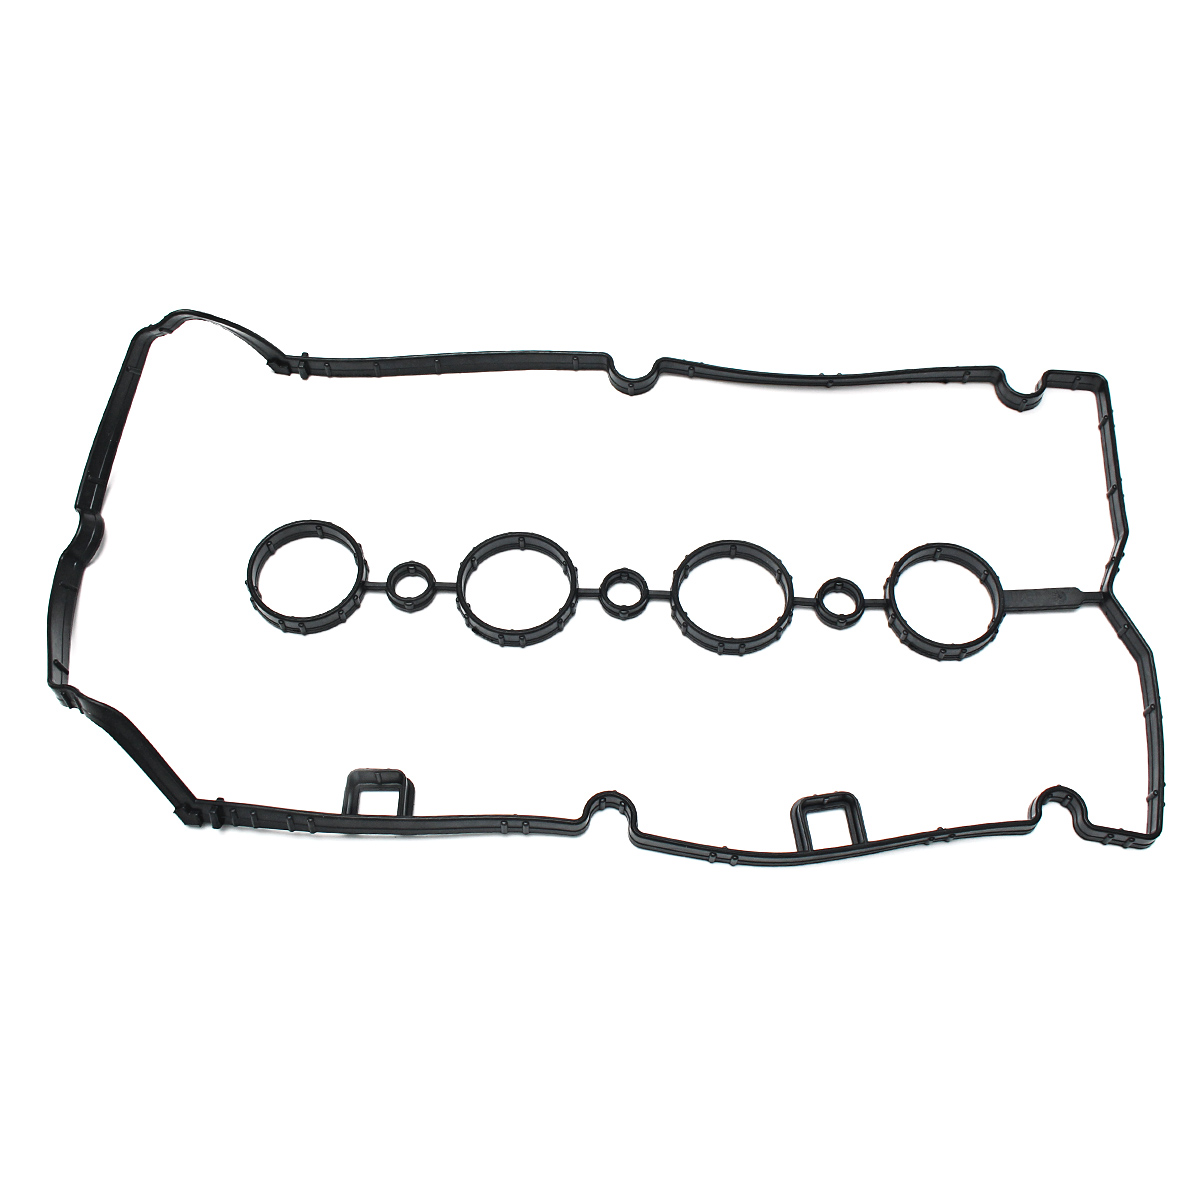 Engine Cover Valve Gasket New Durable Rocker Cover Gasket